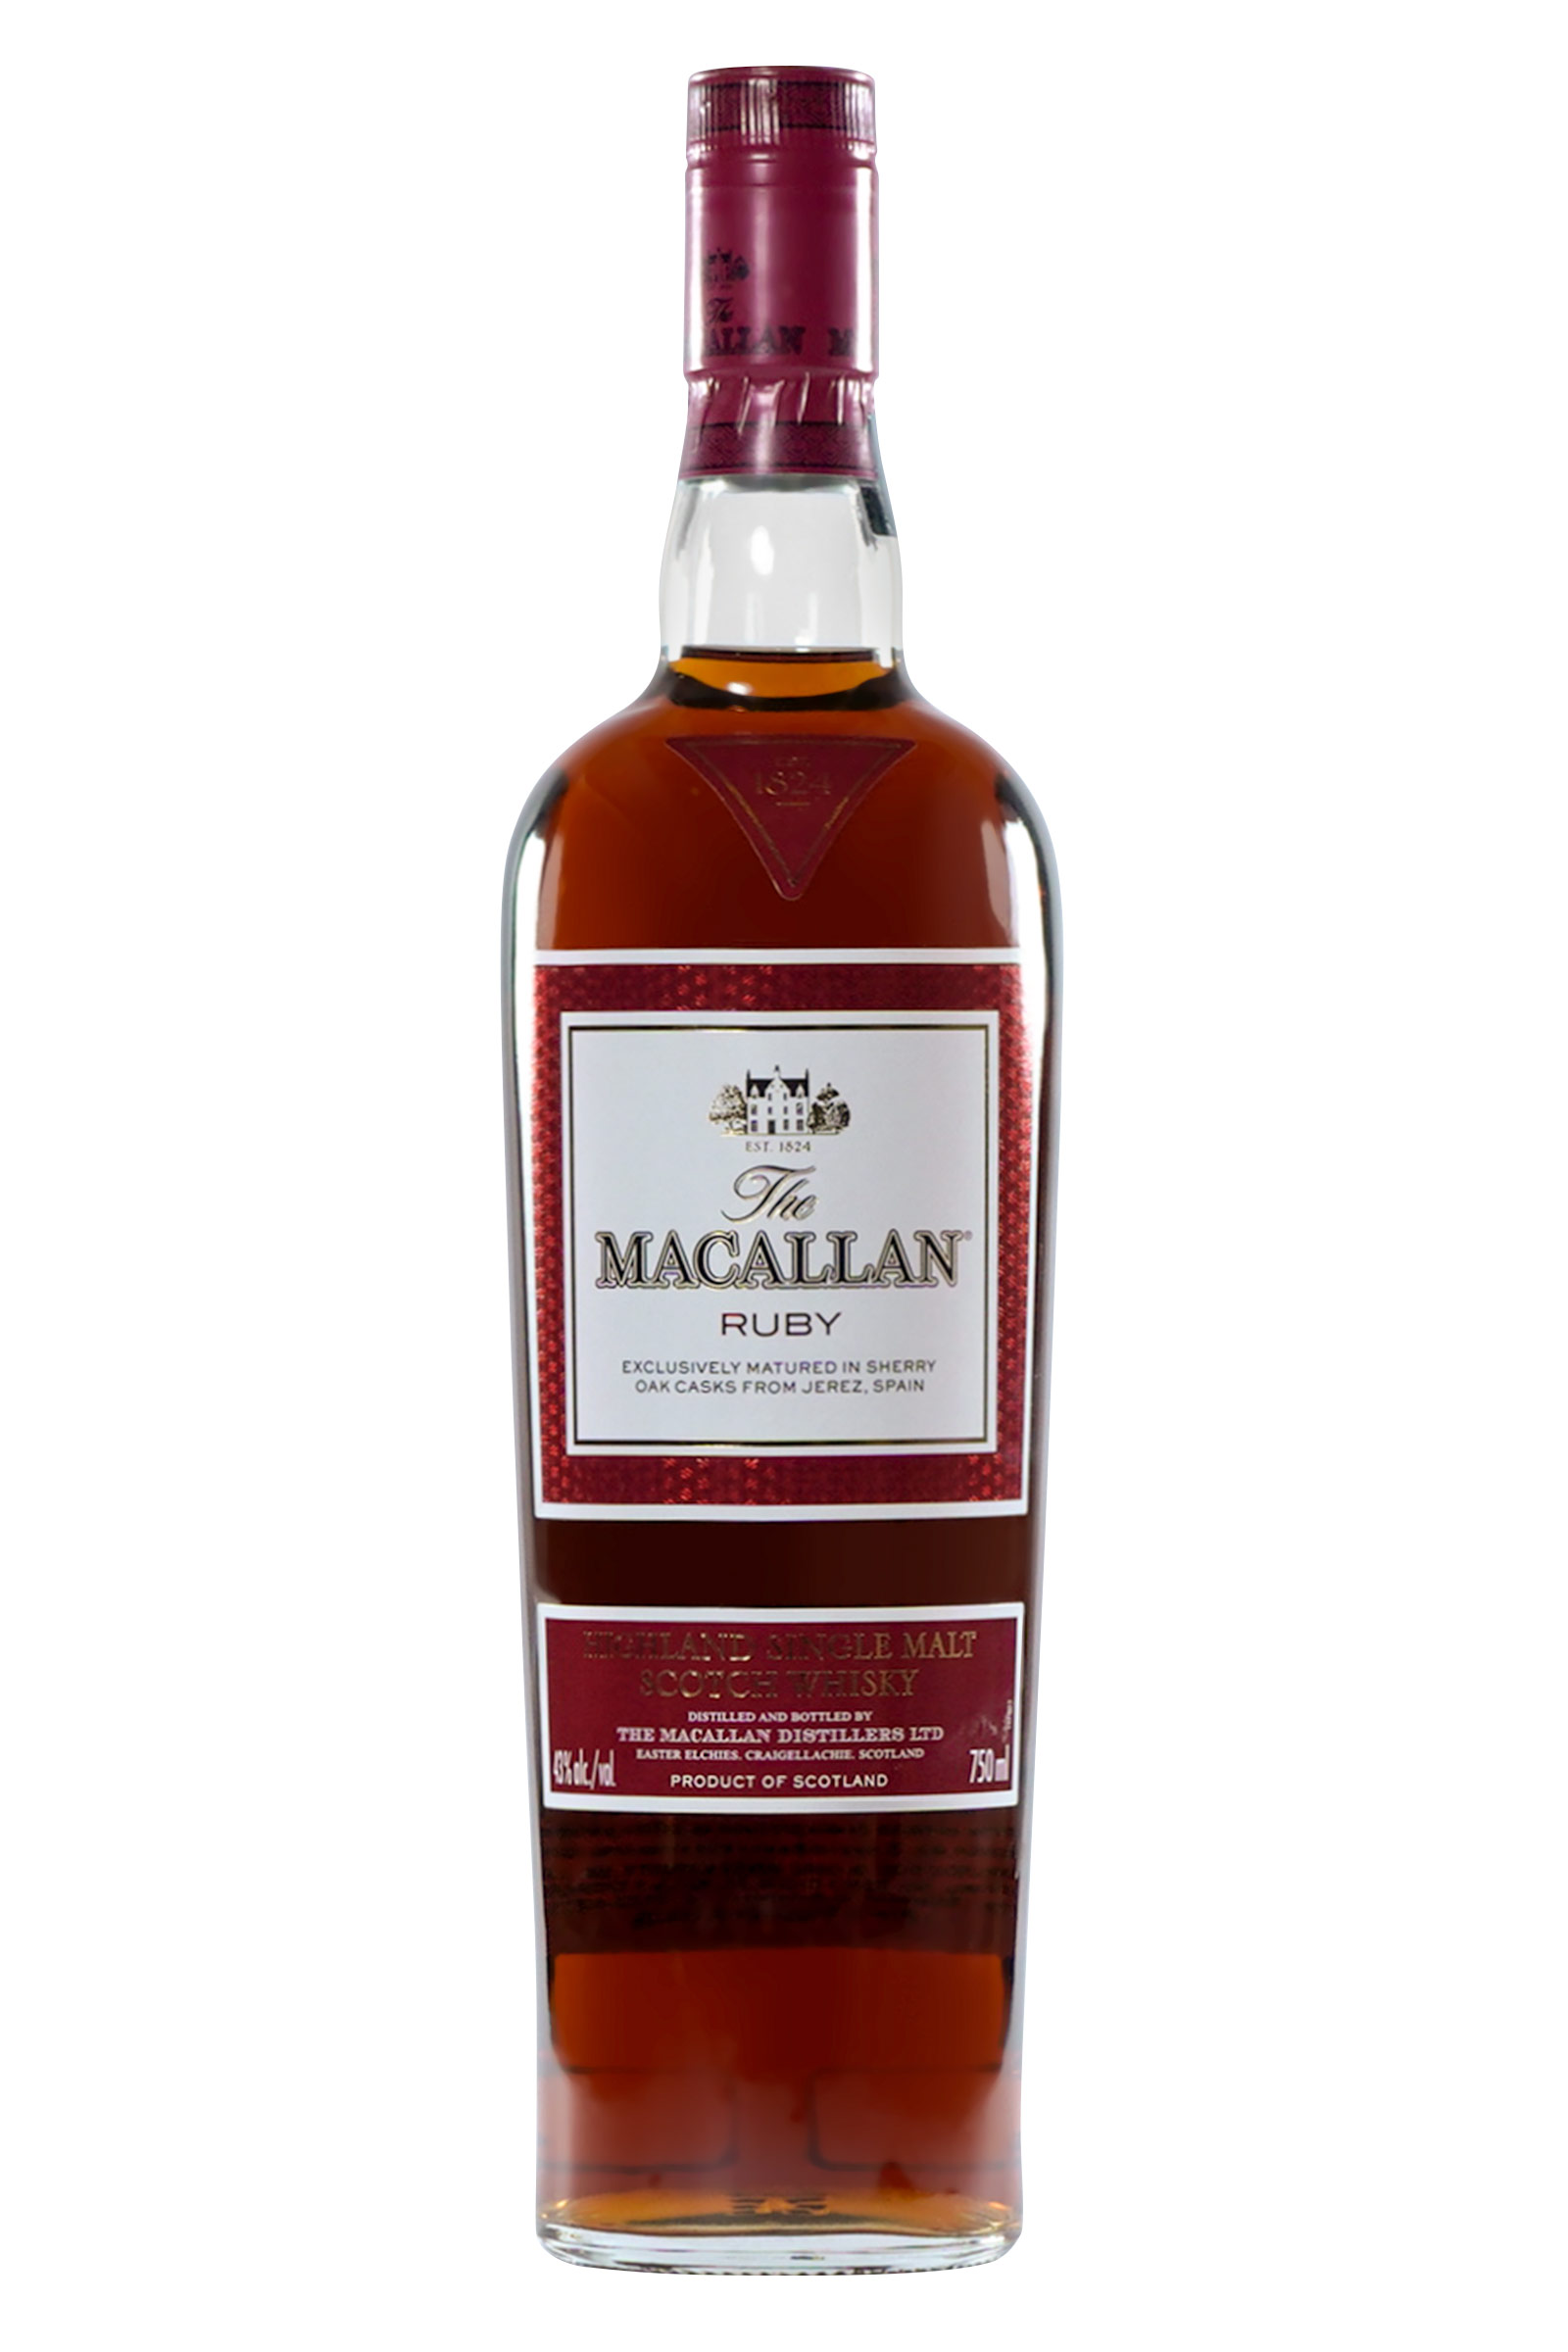 Whisky The Macallan Ruby 21 Años 750ml